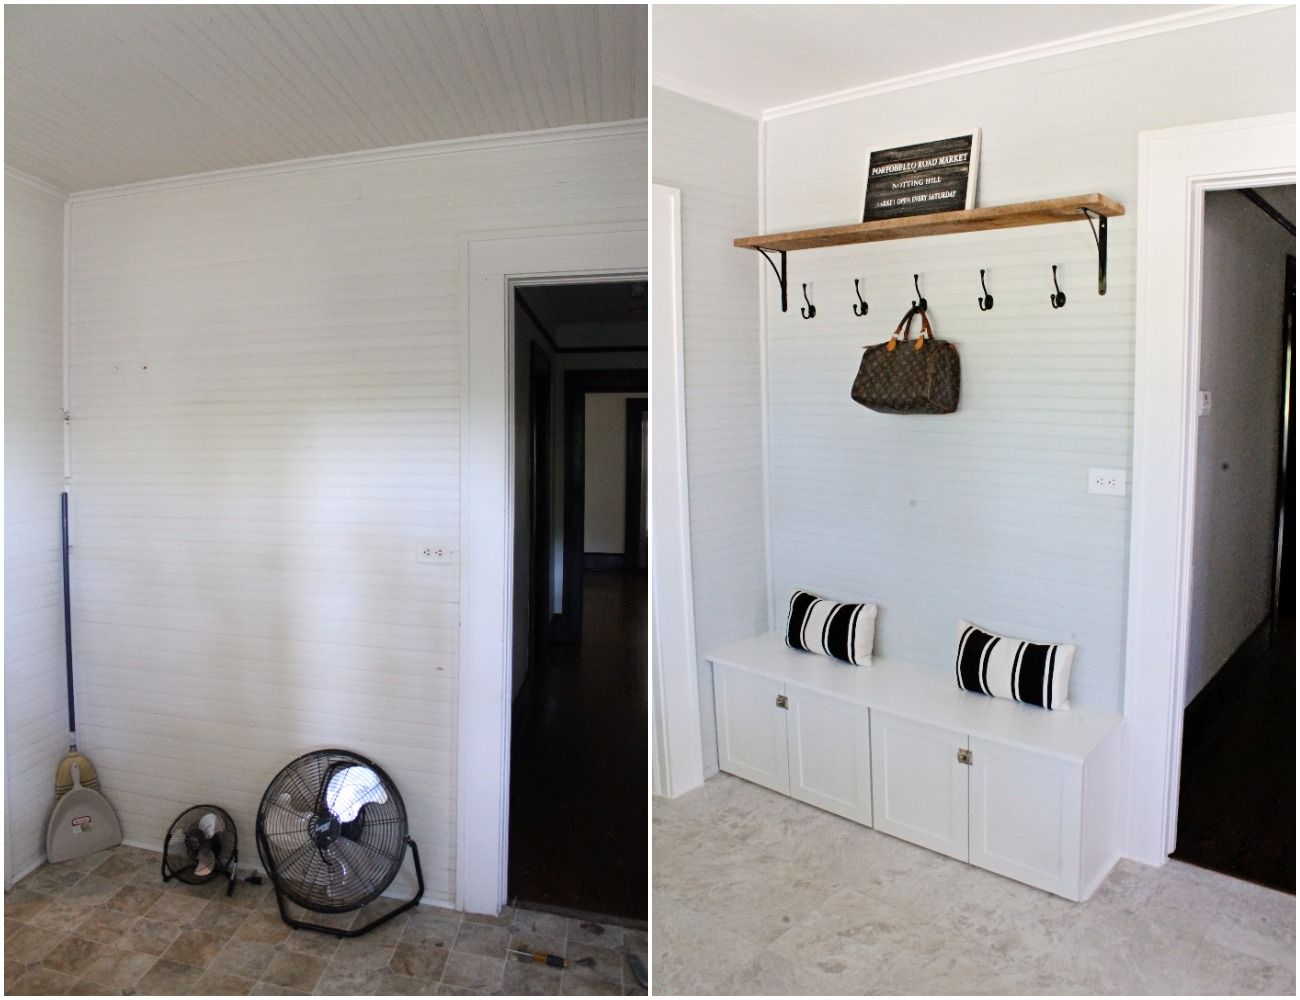 House Flipping Before and Afters - DIY BUDGET LAUNDRY ROOM MUD ROOM IDEAS (1).jpg